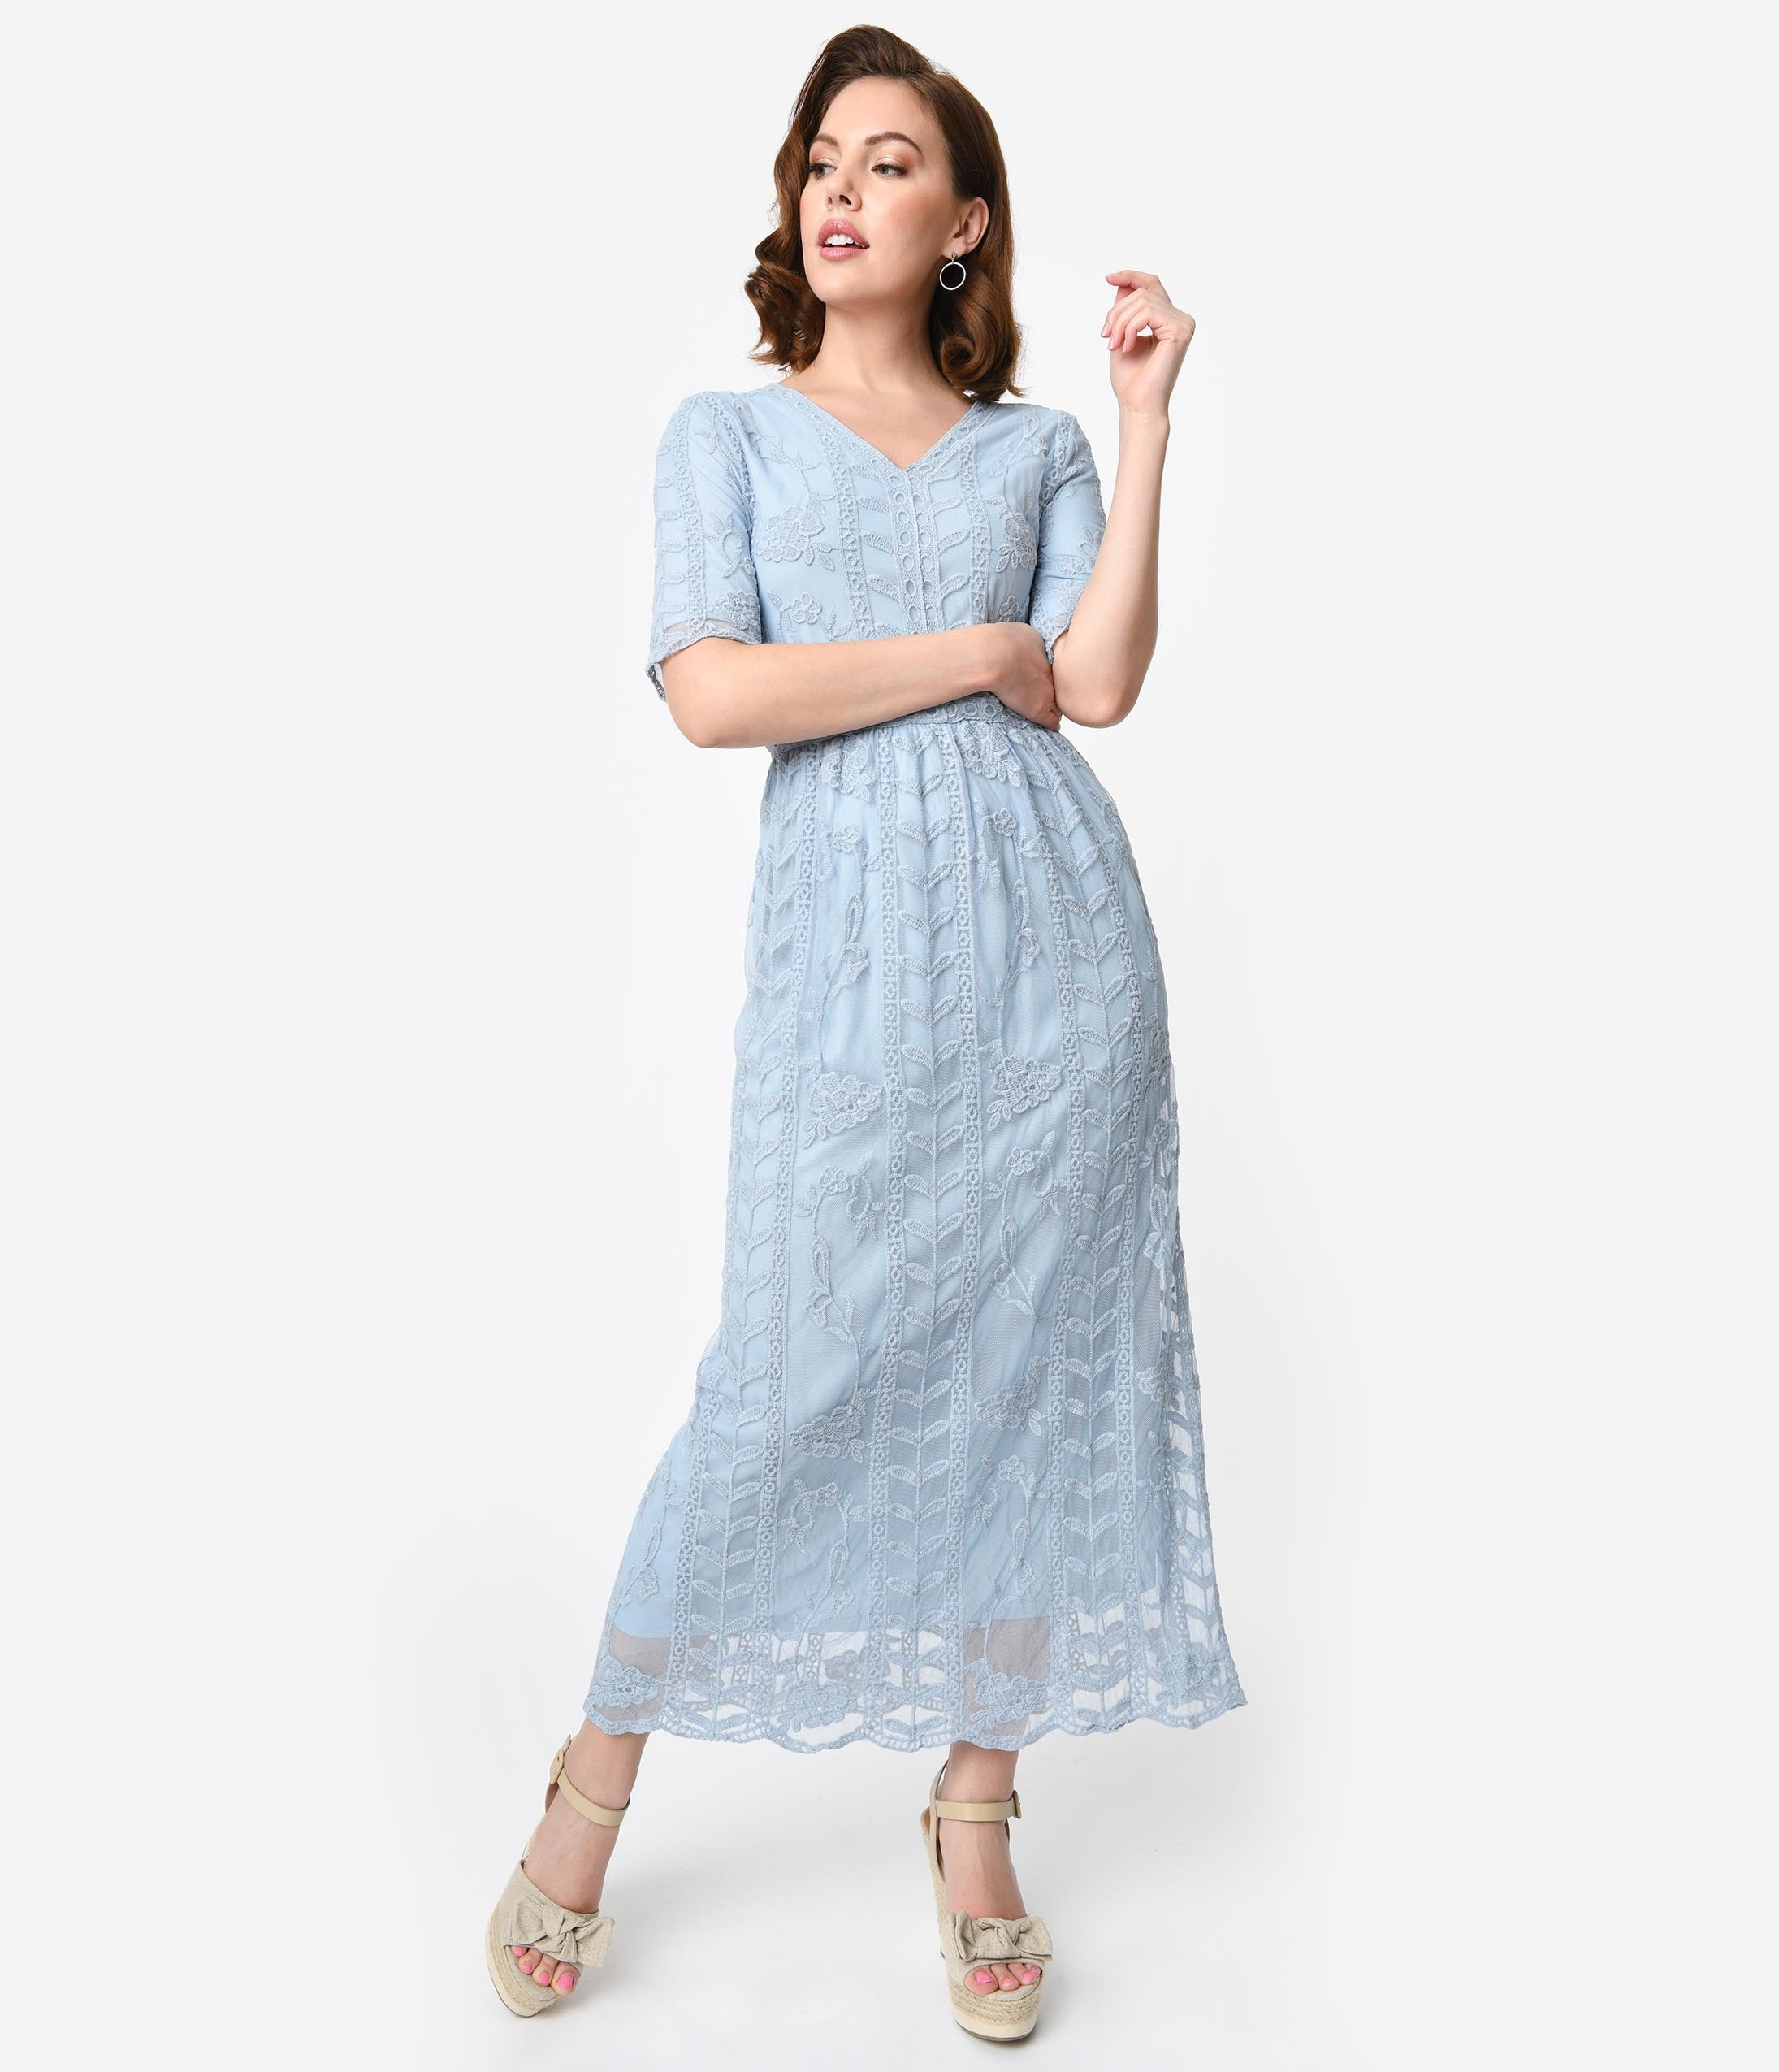 1900-1910s Clothing 1940S Style Antique Blue Lace Short Sleeved Long Dress $58.00 AT vintagedancer.com